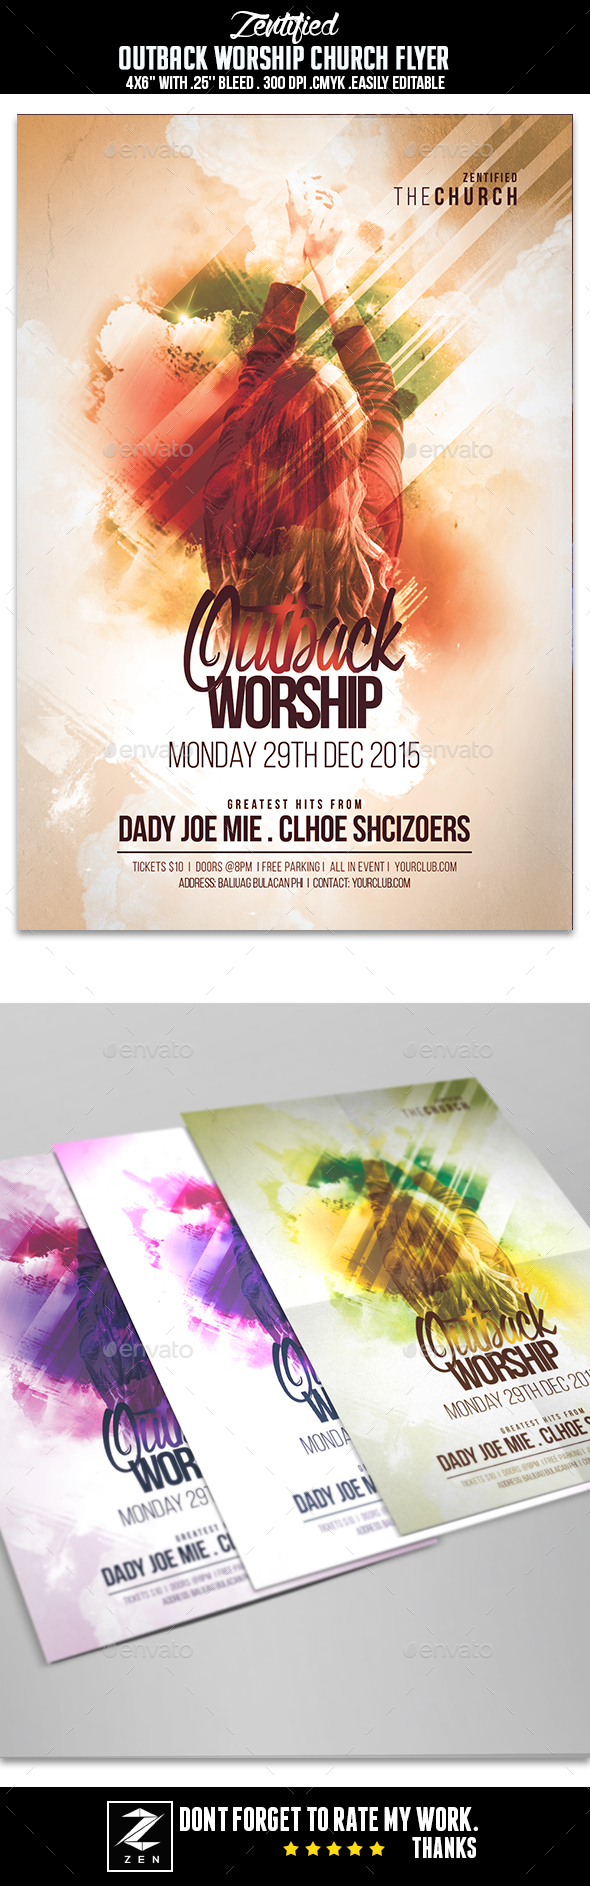 Outback Worship Church Flyer - Events Flyers